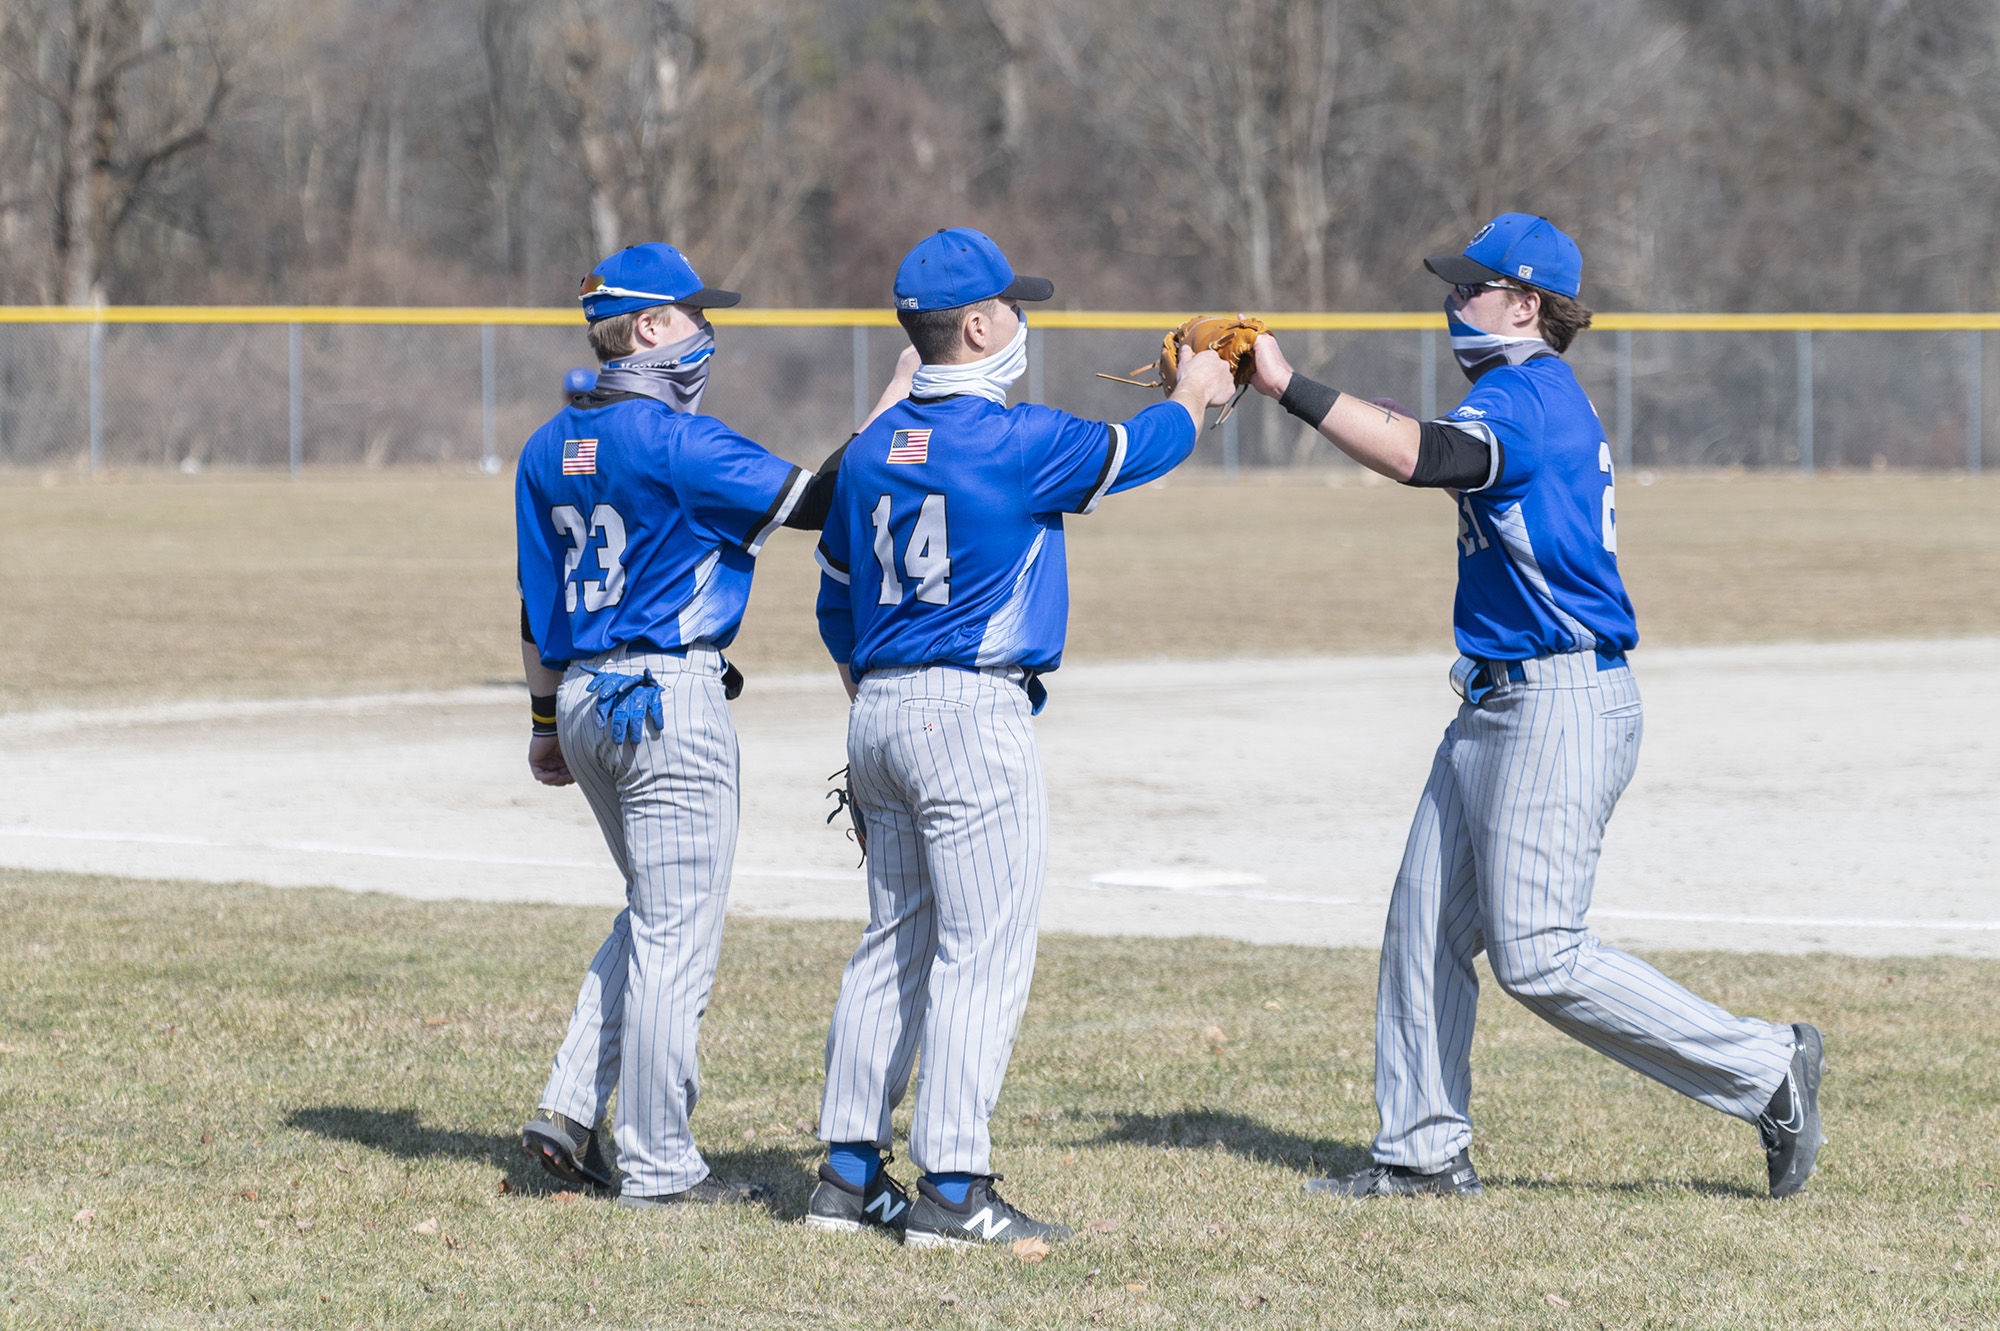 KCC baseball players greet each other off the field between innings.